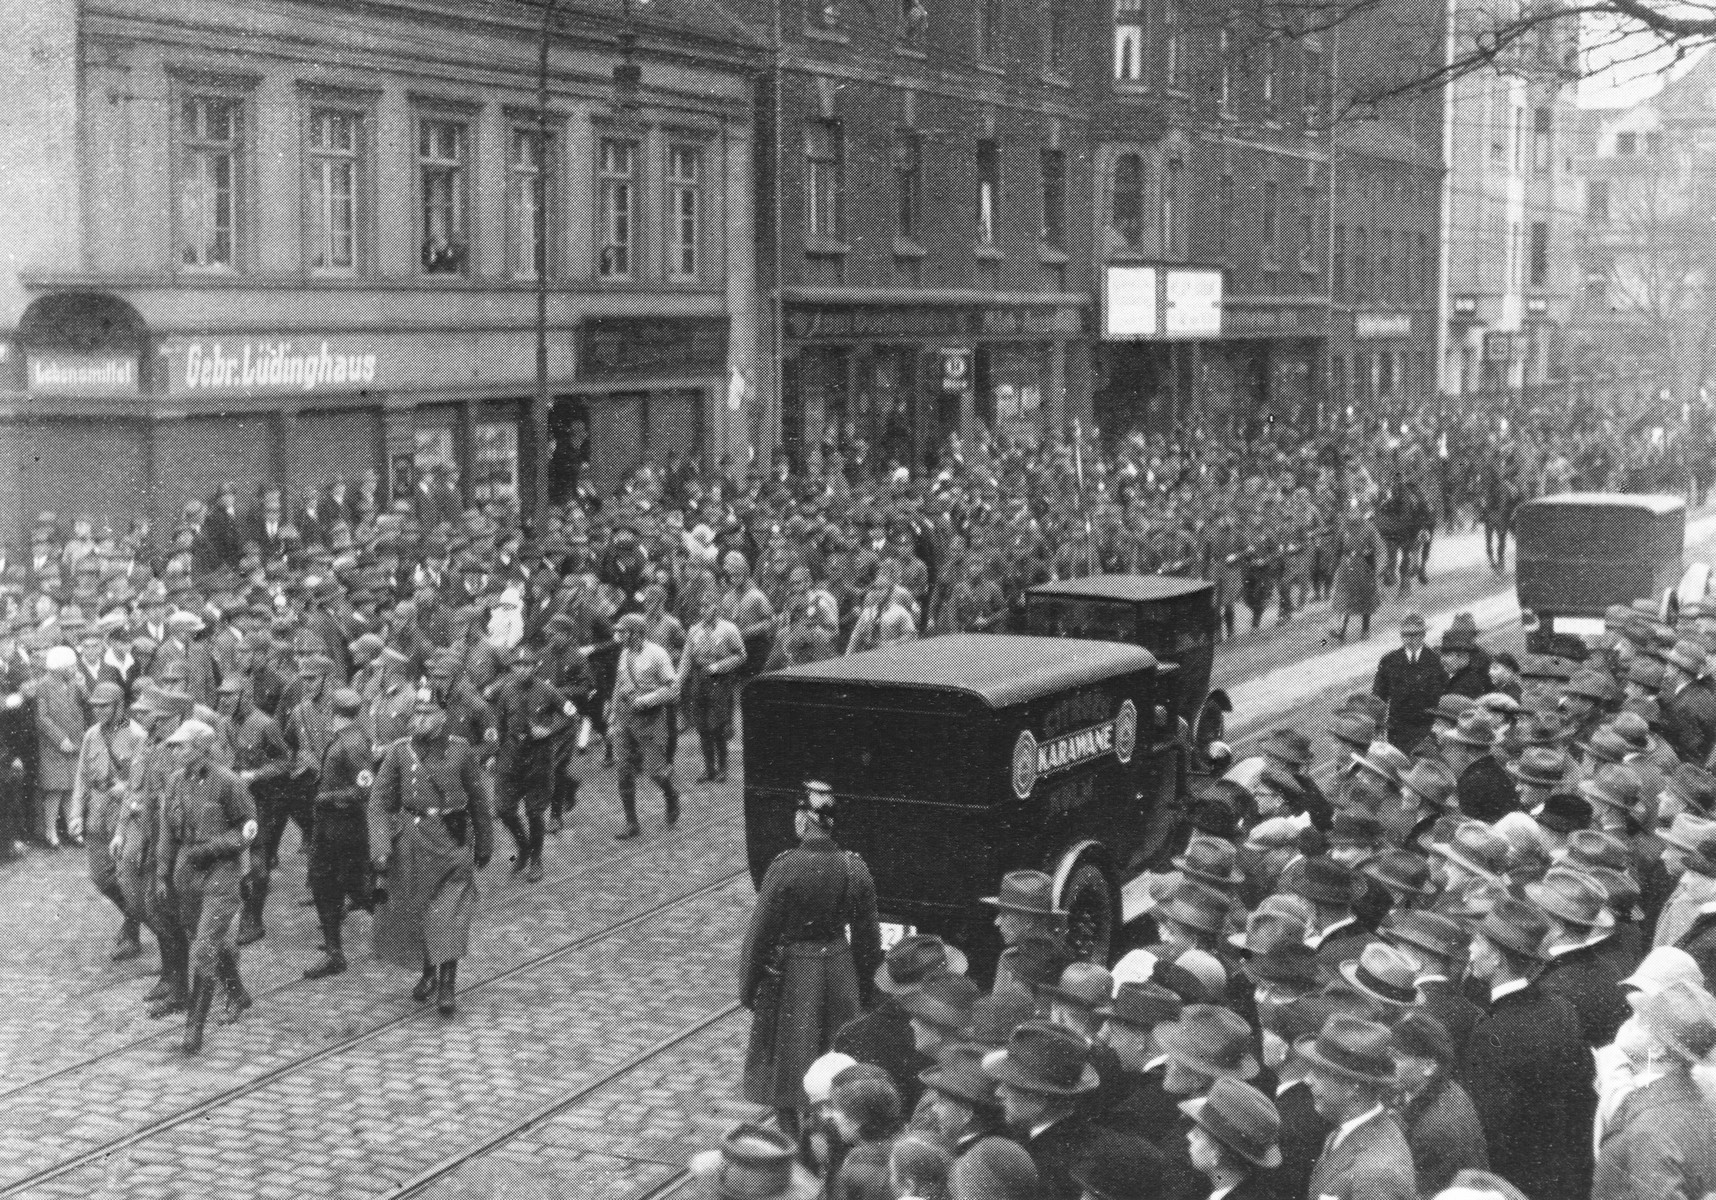 An SA march in a German city before the Nazi seizure of power.